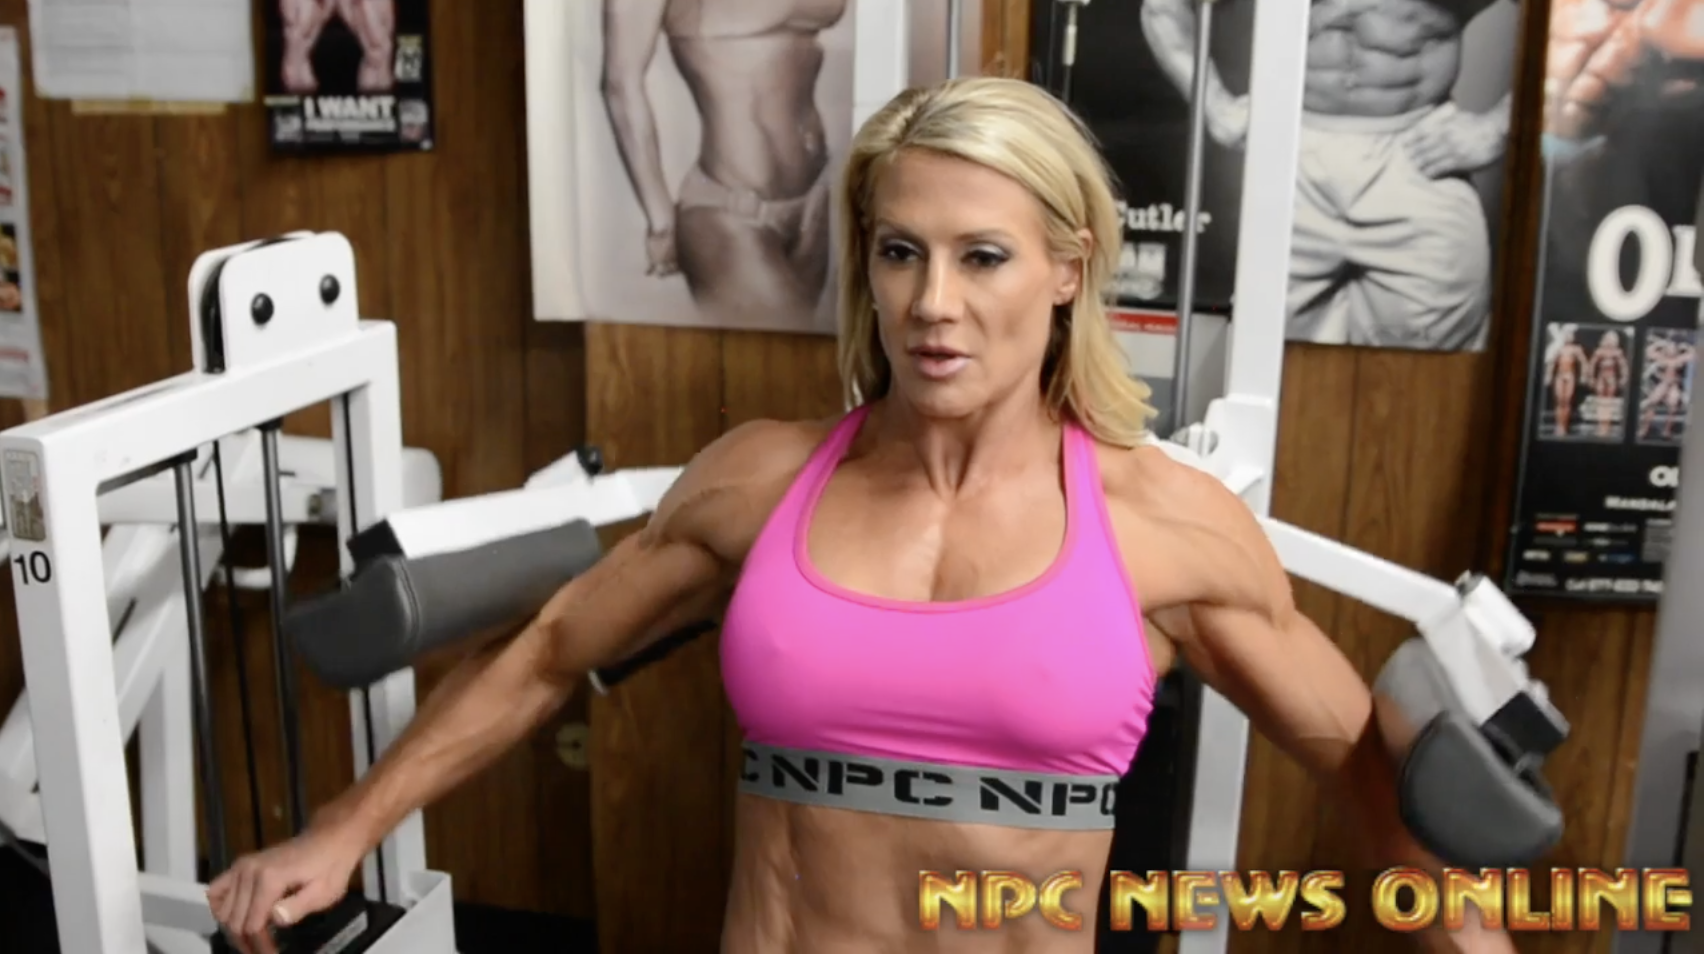 IFBB Fitness Pro Whitney Jones Shoulder Workout Video For The 2018 Arnold